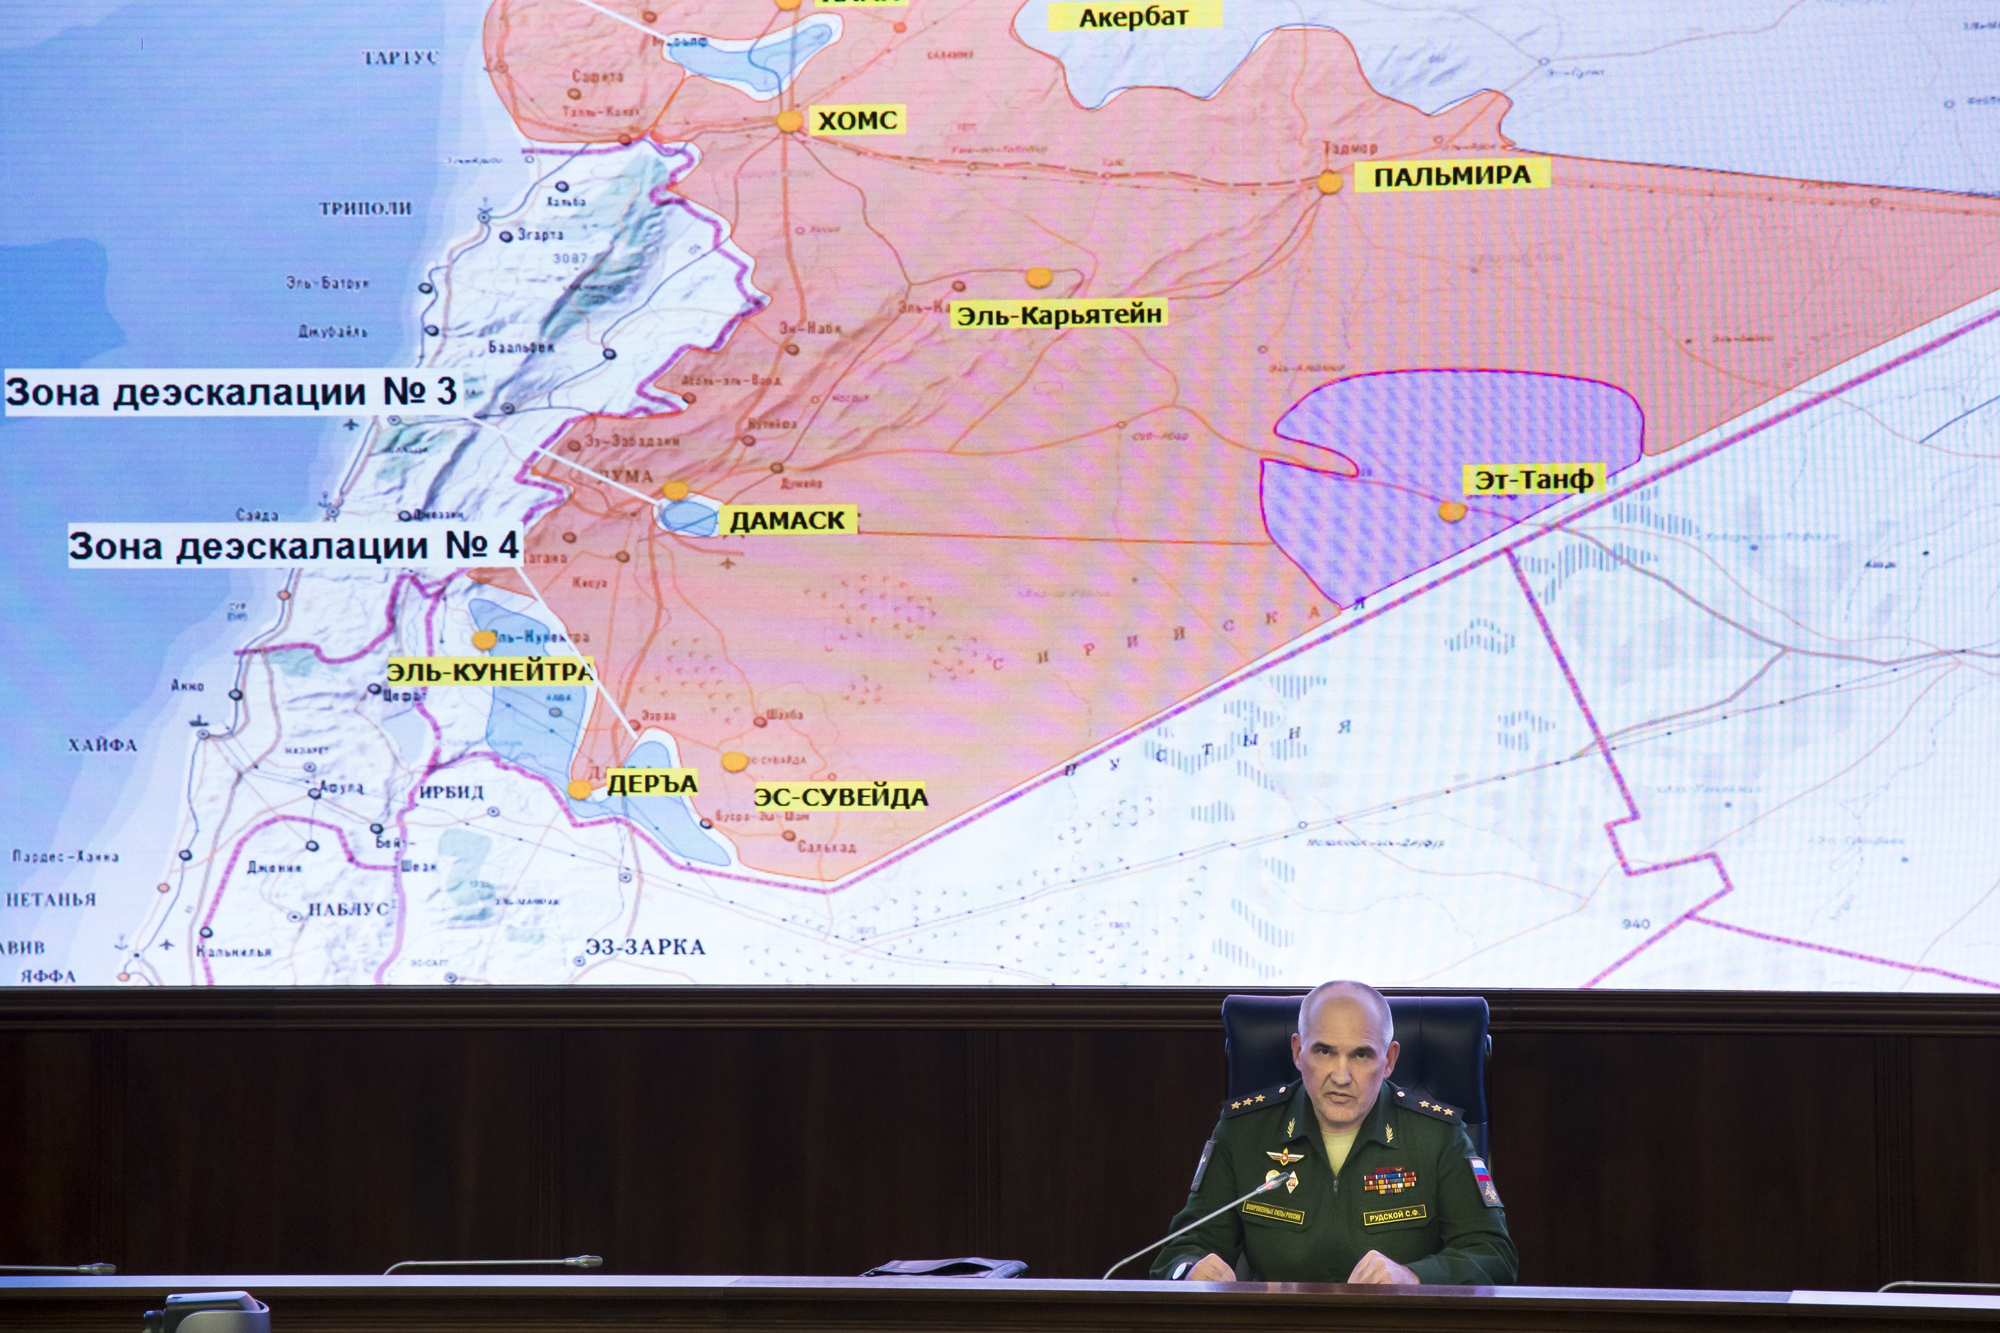 Russia Deploys Troops in Syrian Safe Zones as Monitors